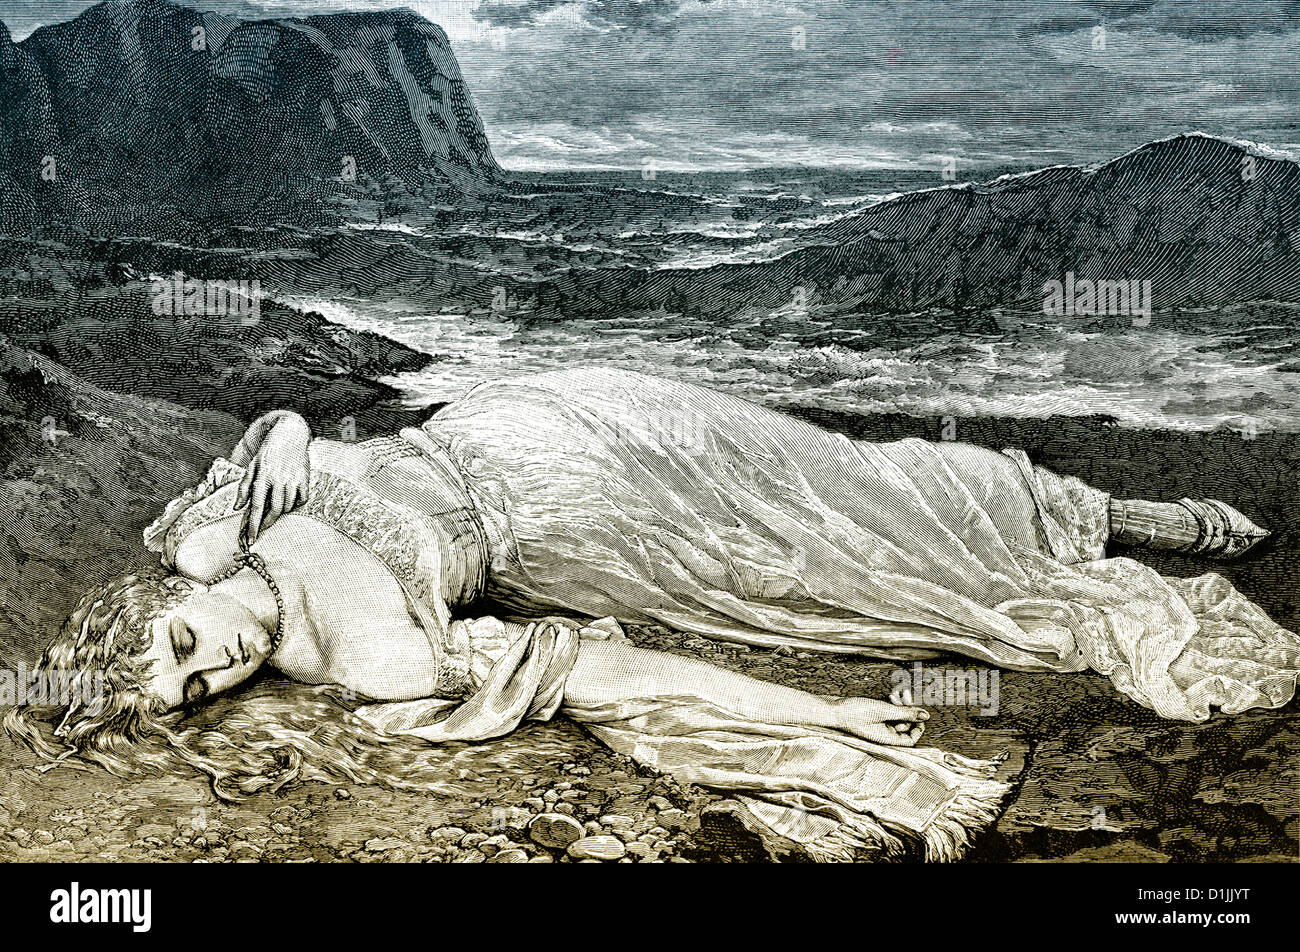 19th century, a young woman wearing a white dress lying on a beach, sleeping or dead, a romantic scene, around 1881 - Stock Image